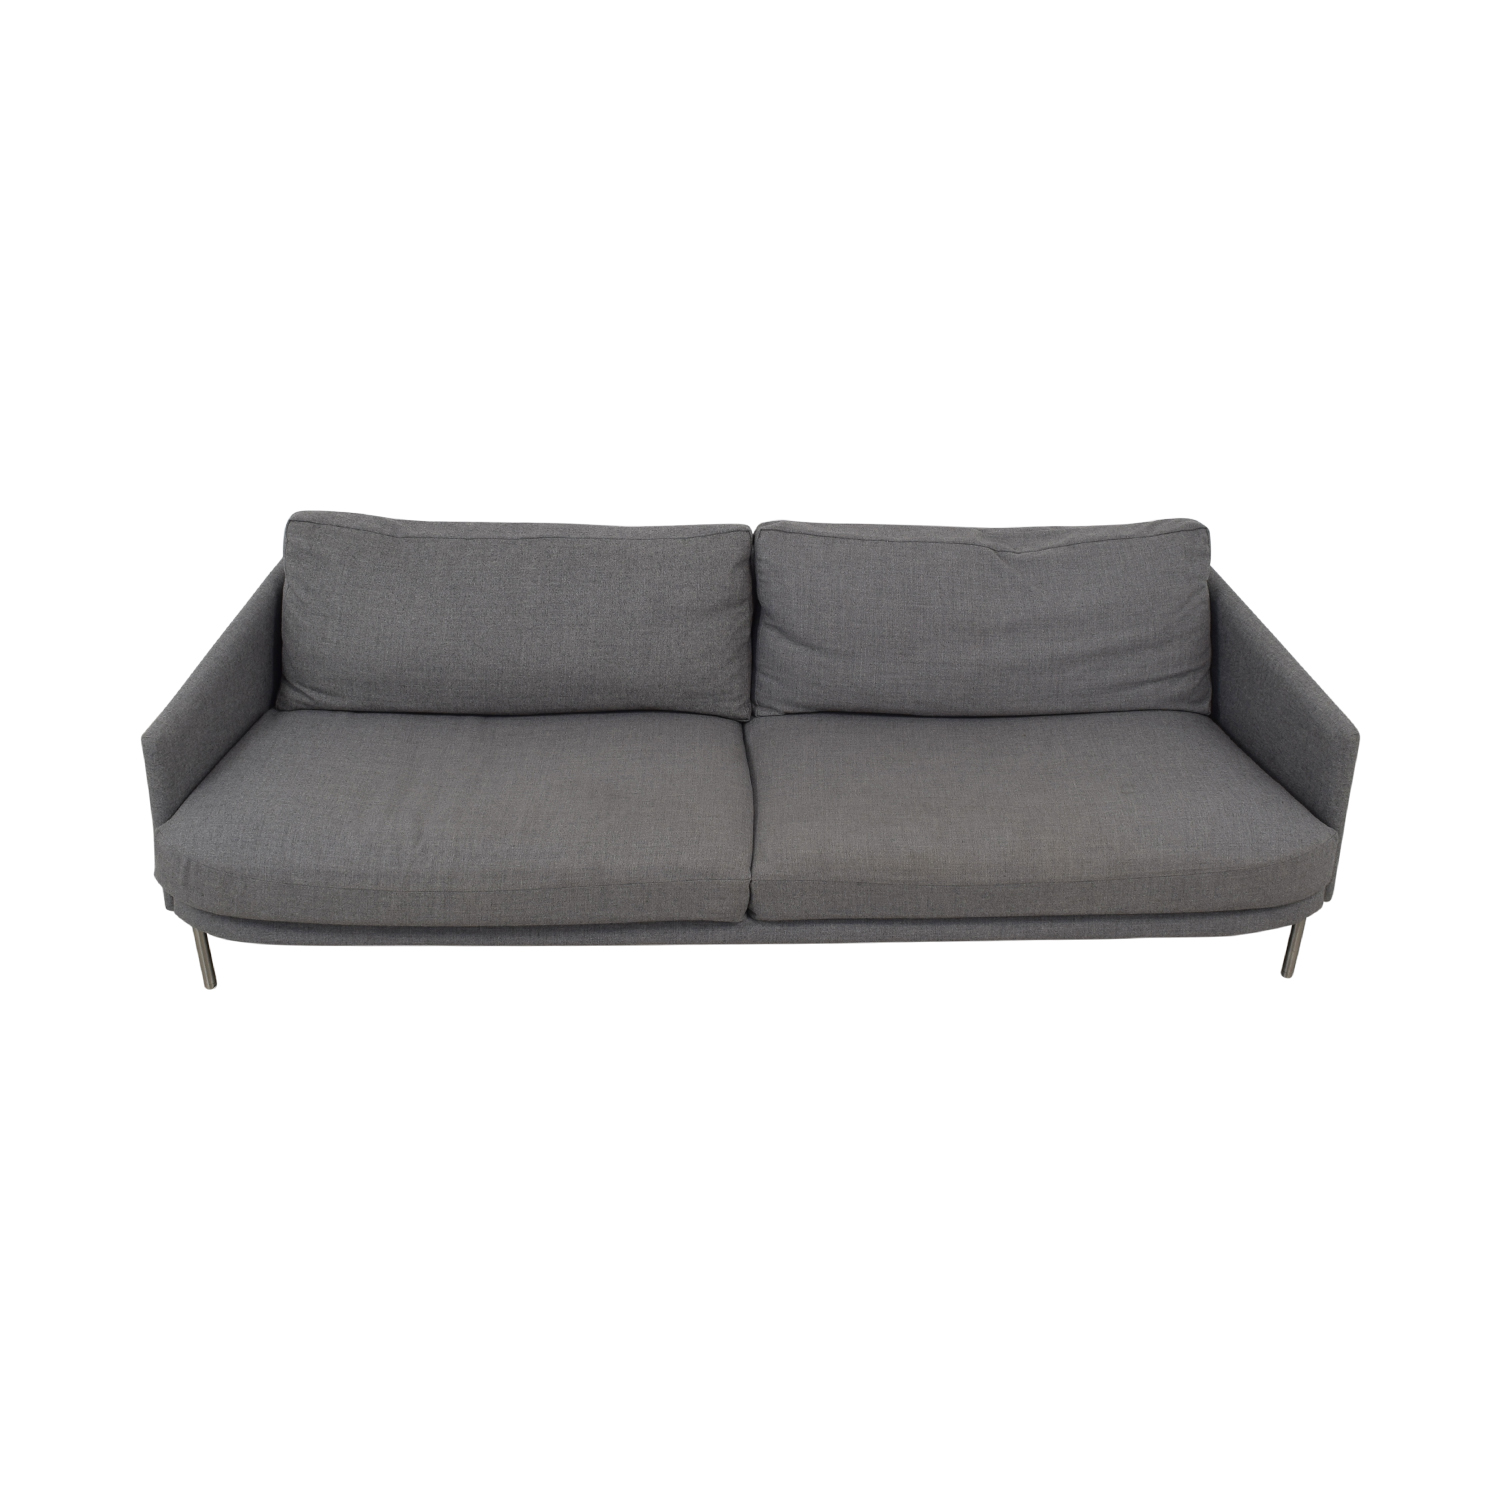 Design Within Reach Design Within Reach Two Cushion Sofa price